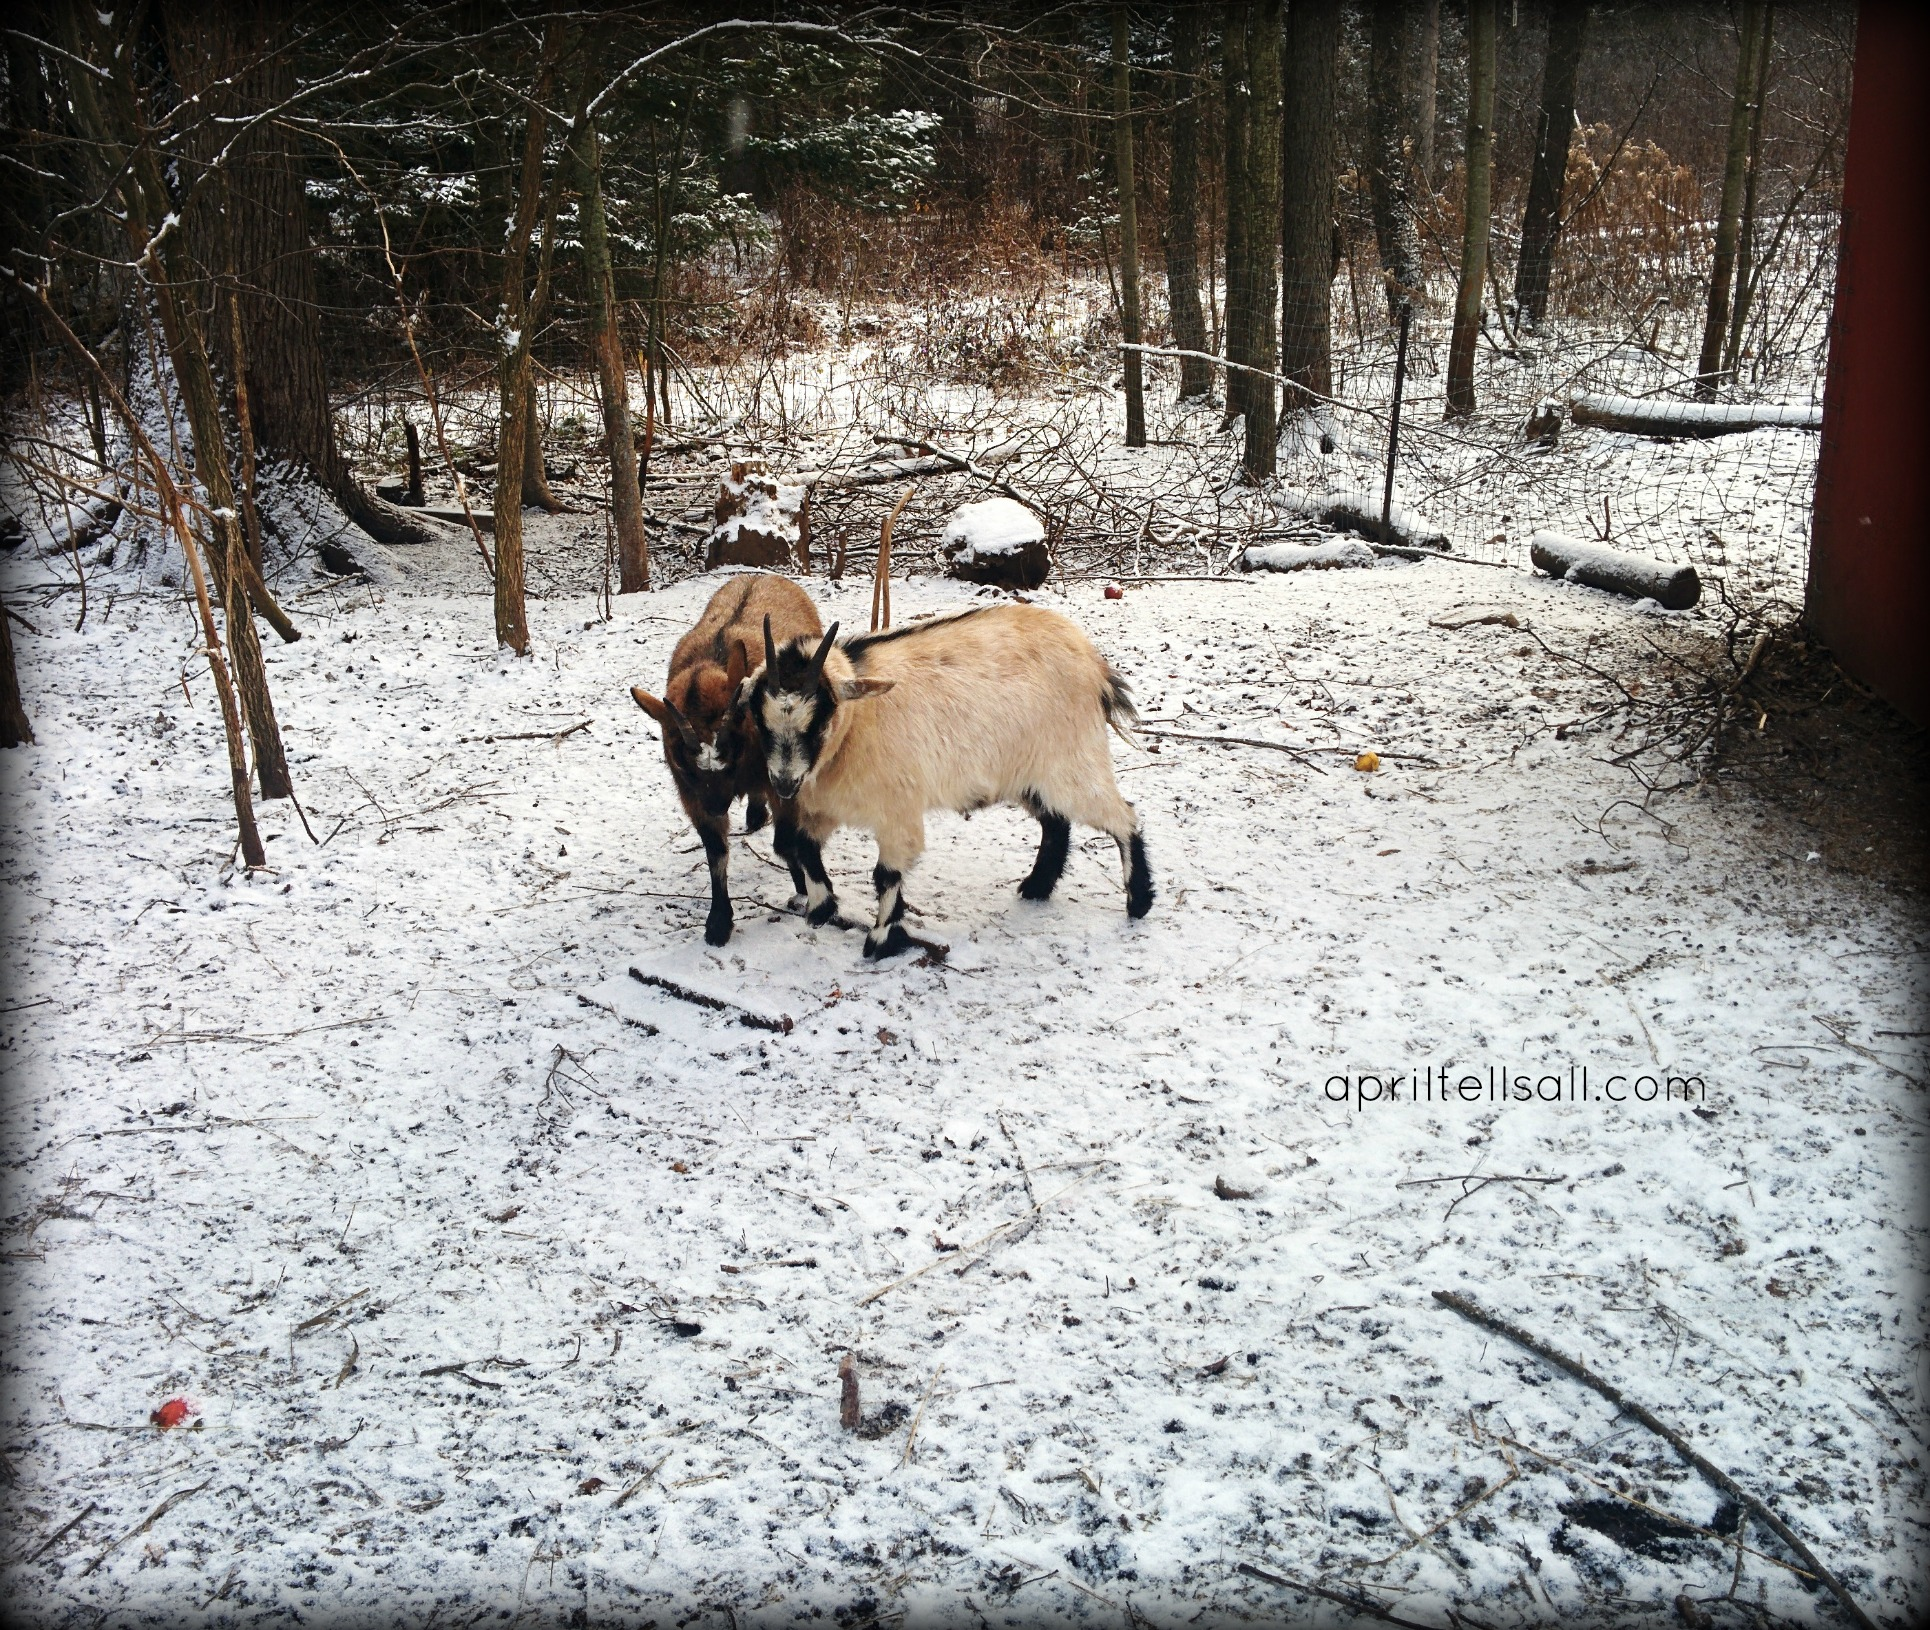 A Simple Guide For First Time Goat Owners | April Tells All